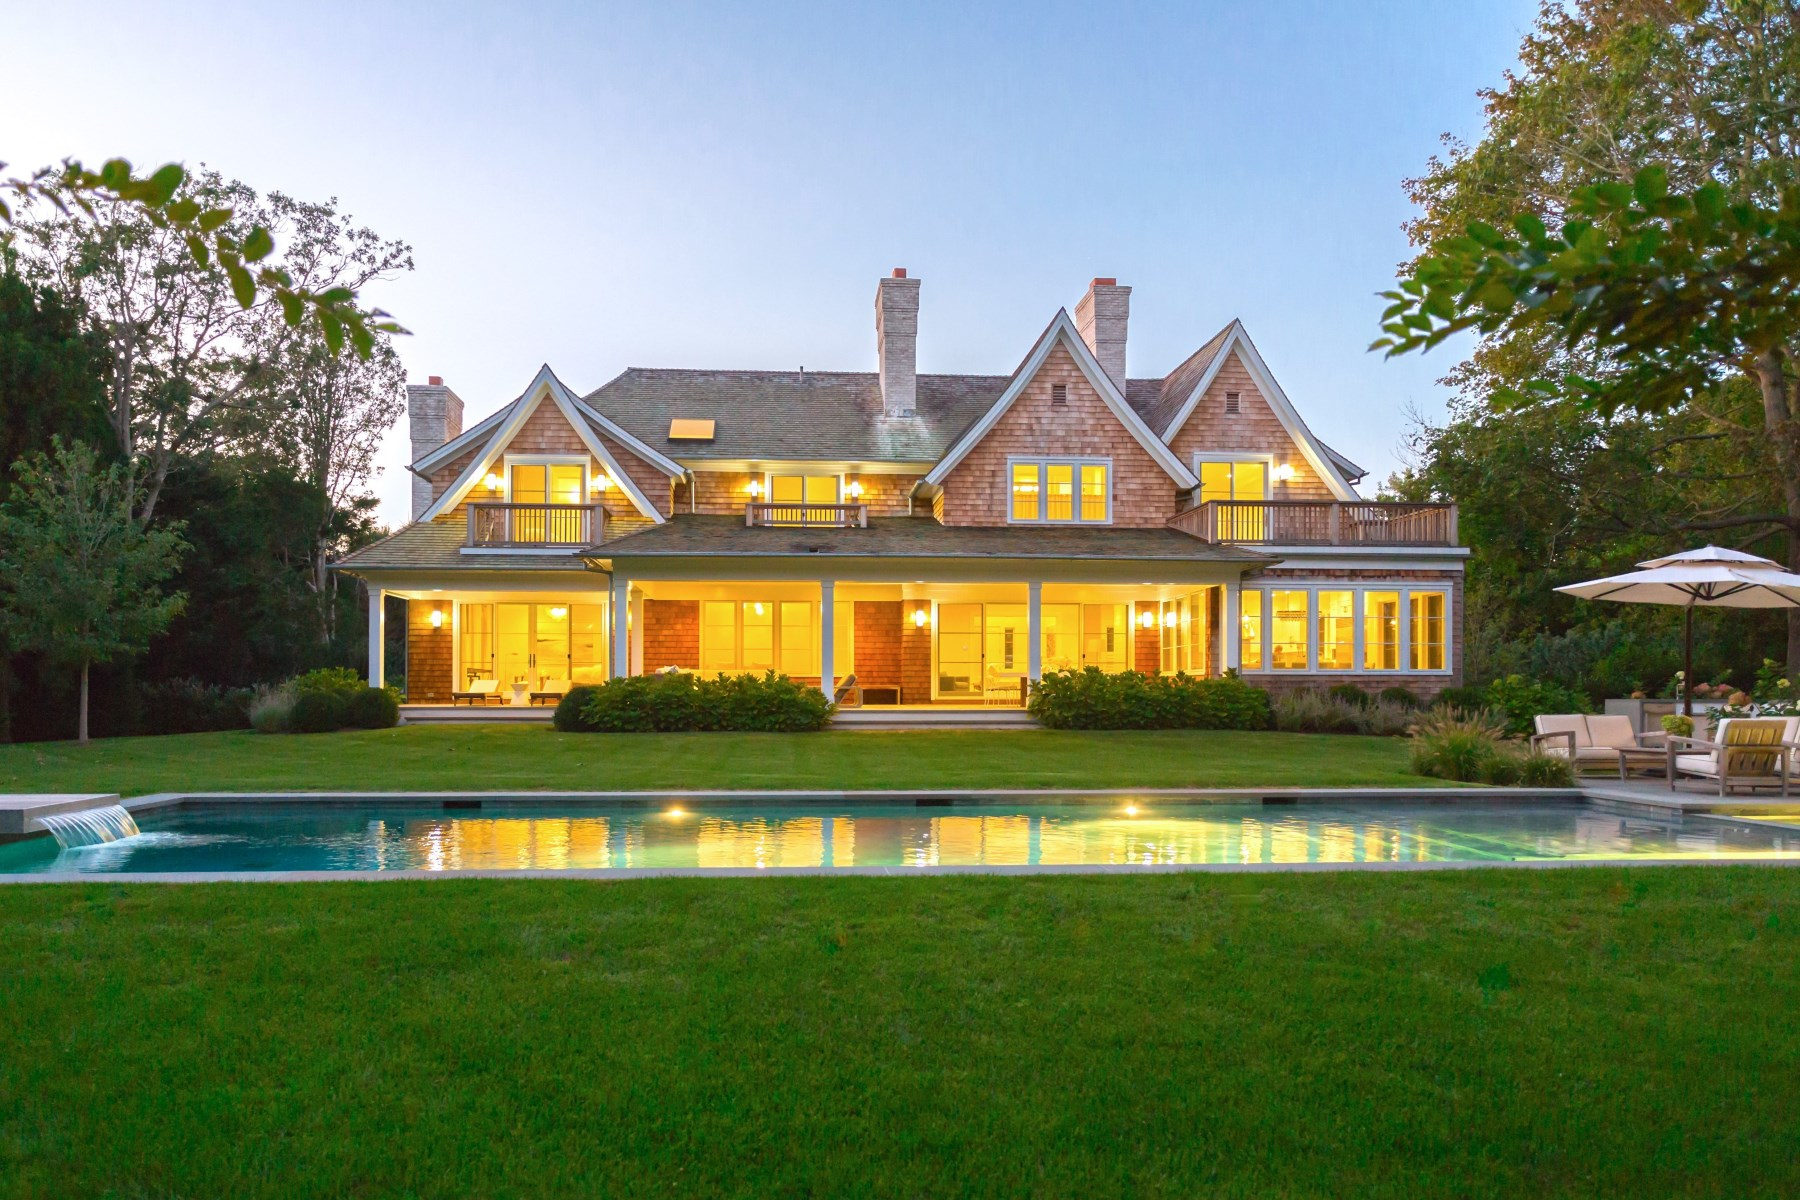 Casa Unifamiliar por un Venta en Georgica Designer's Own New Construction 200 Georgica Road East Hampton, Nueva York, 11937 Estados Unidos